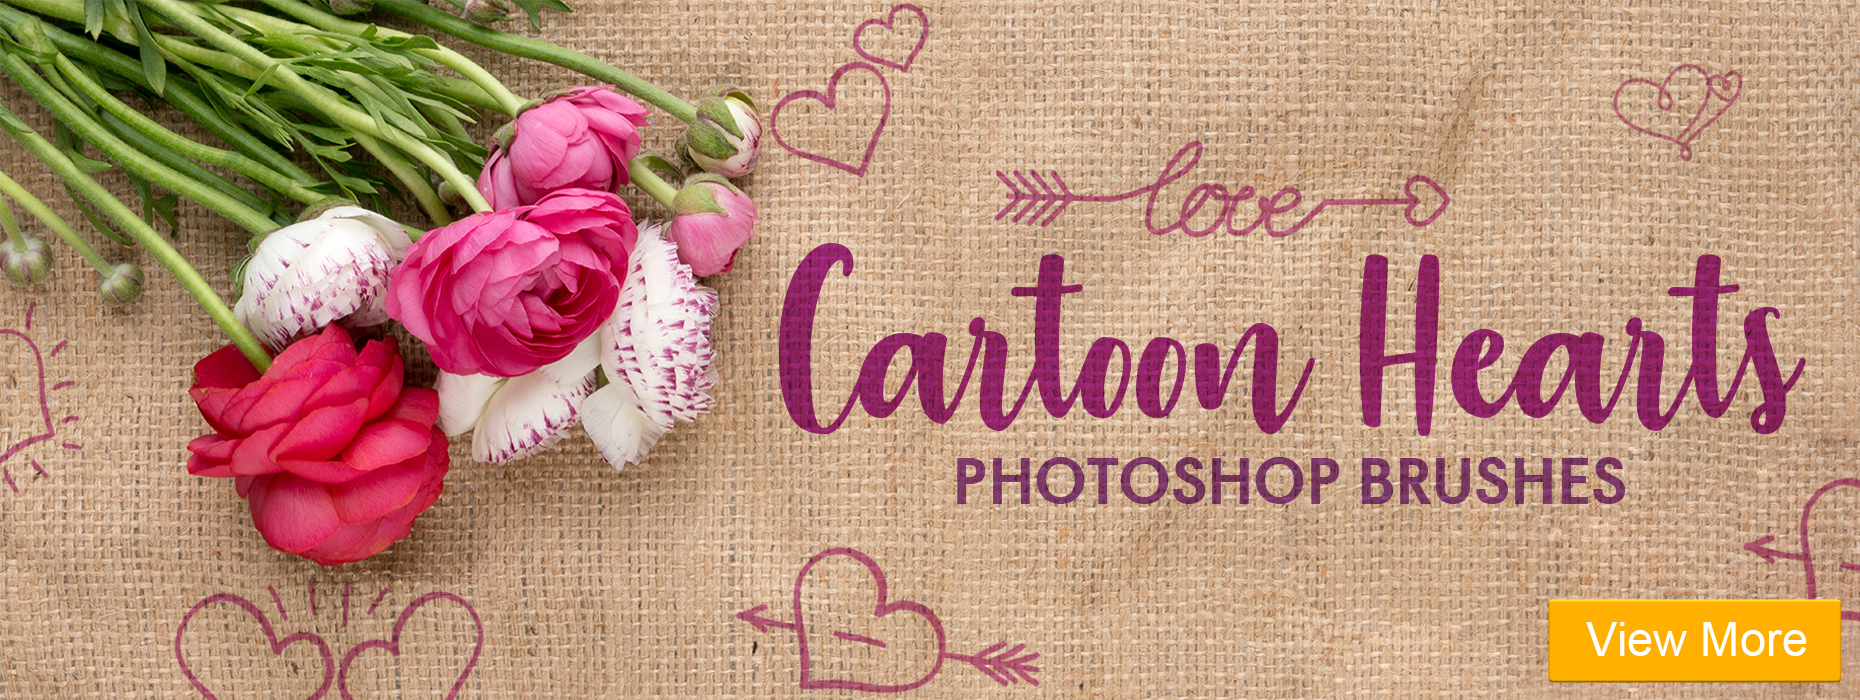 free watercolor brushes photoshop cartoon hearts photoshop brushes banner